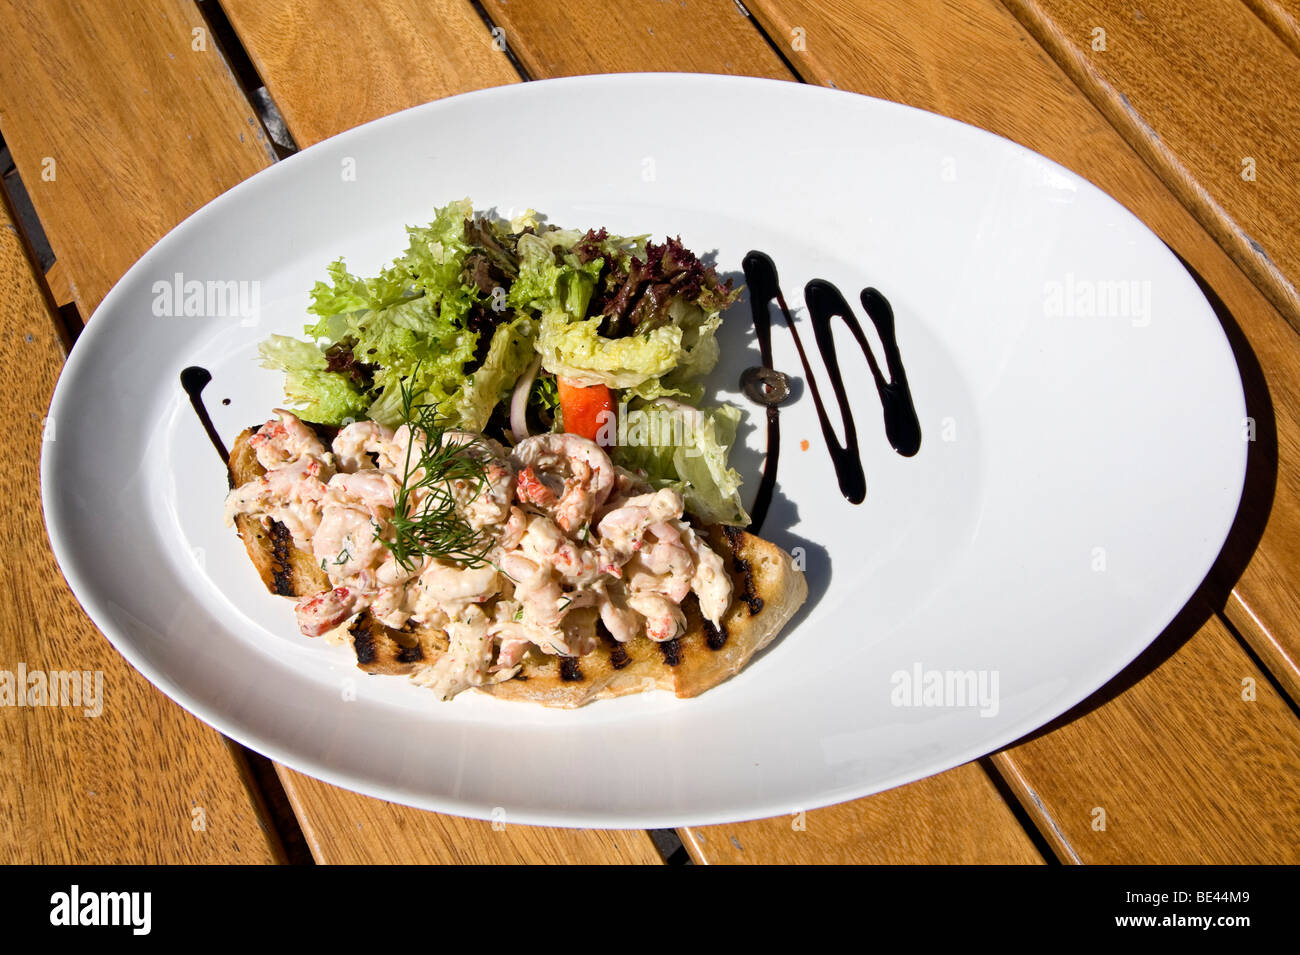 Typical open faced Norwegian sandwich featuring shrimp salad and greens. - Stock Image